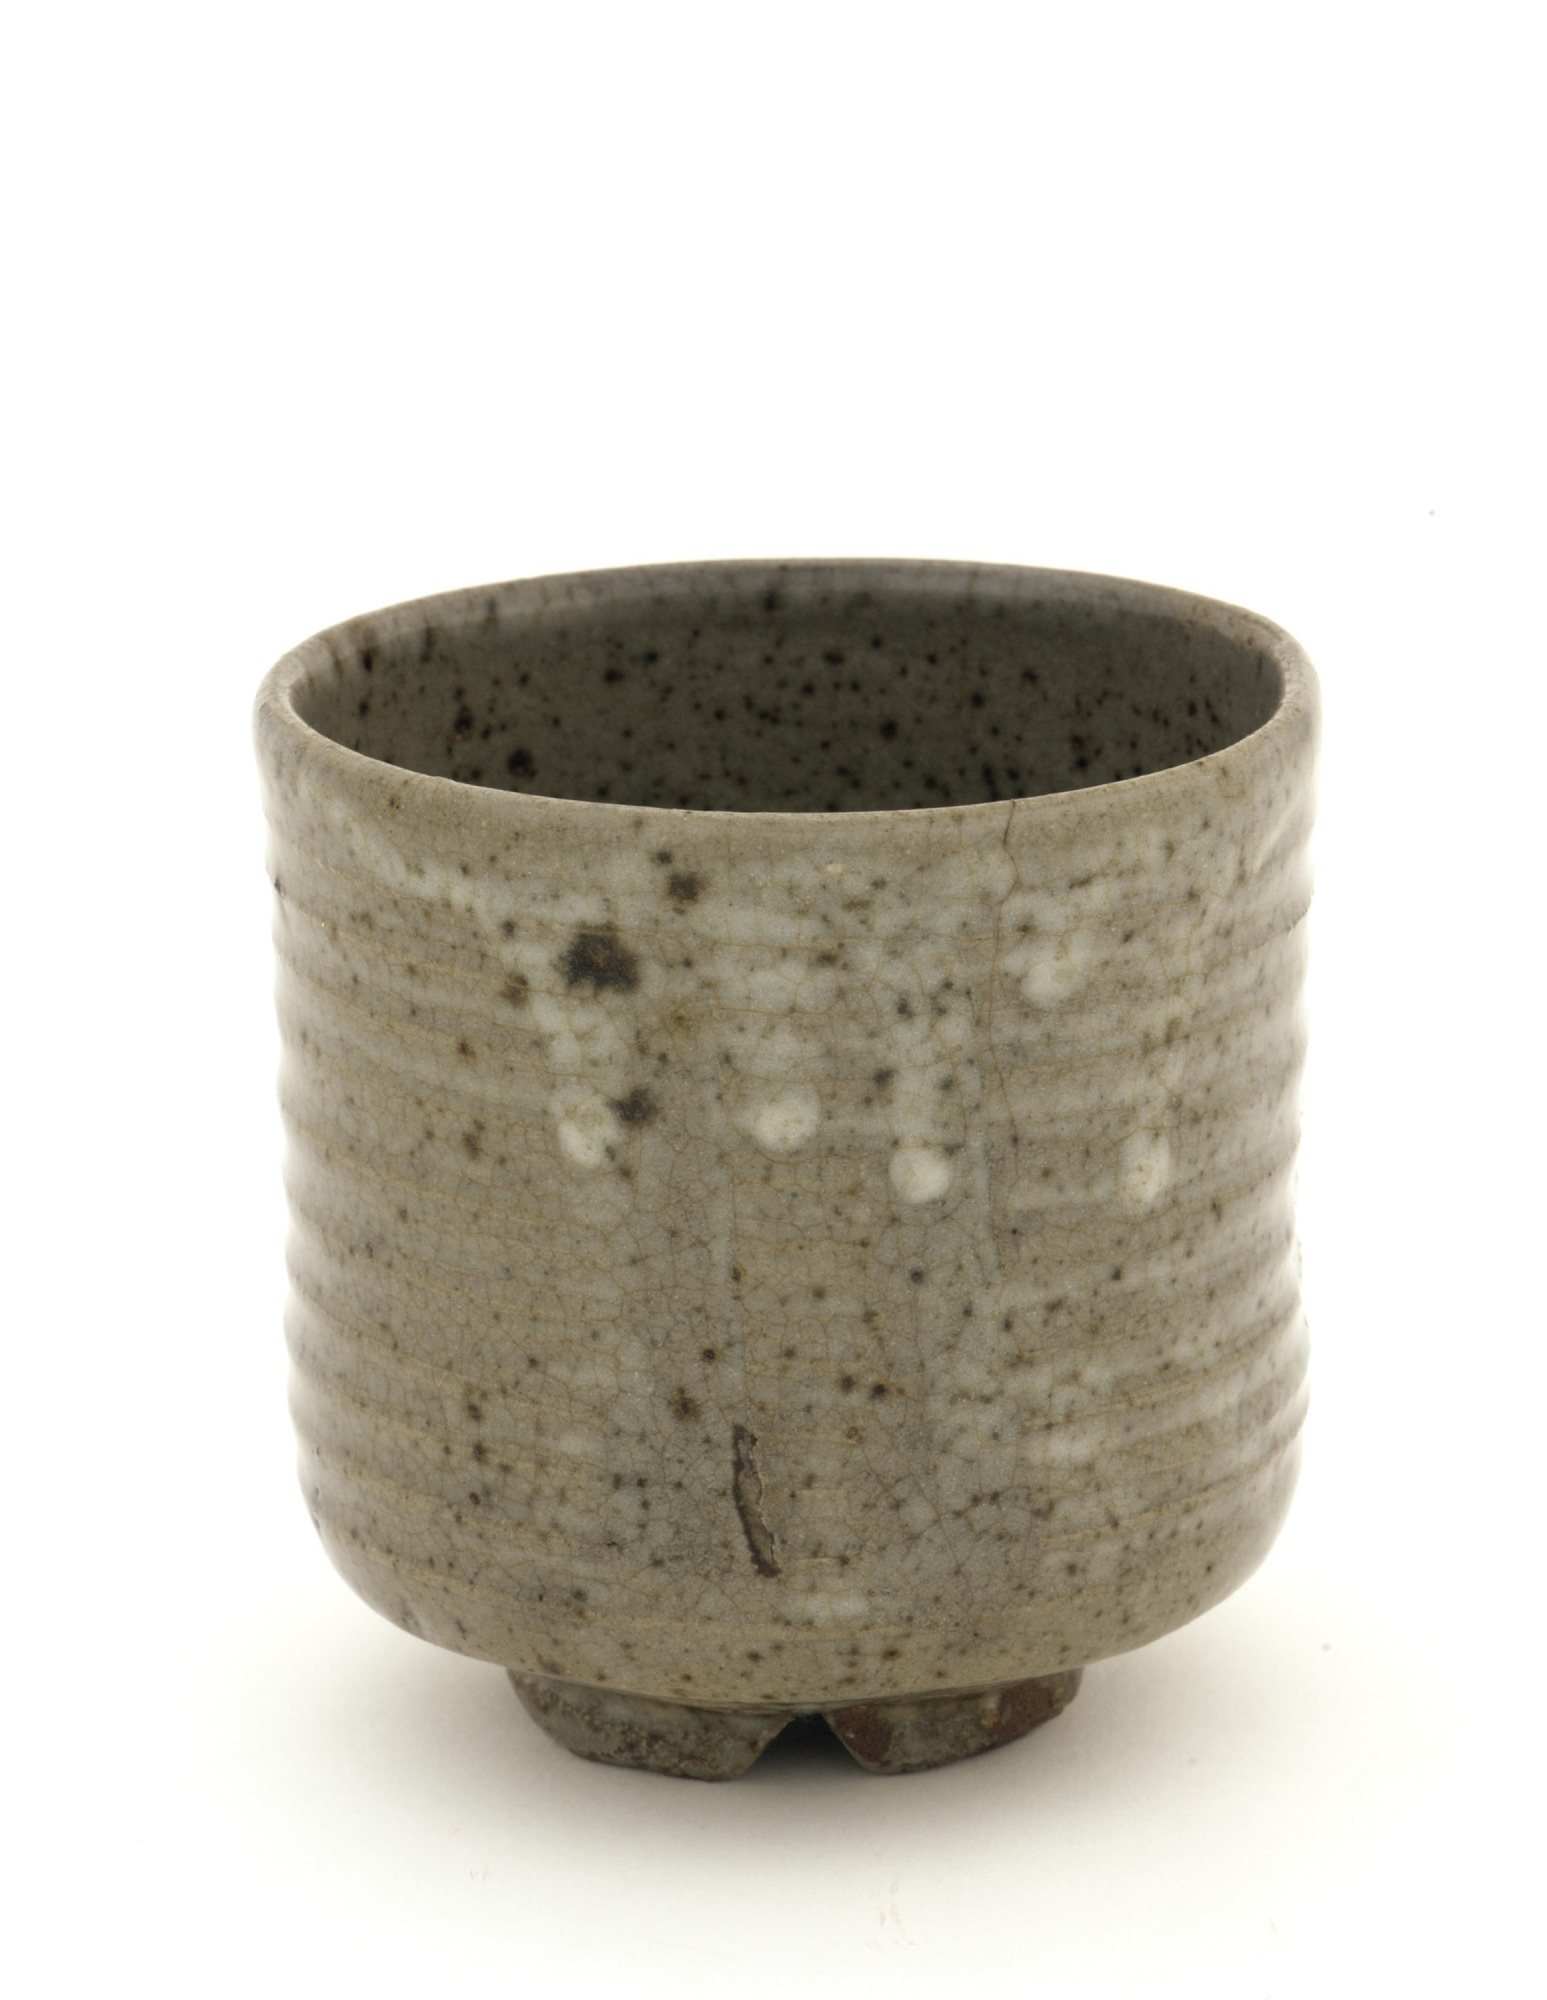 3/4 profile: Asahi ware cylindrical tea bowl